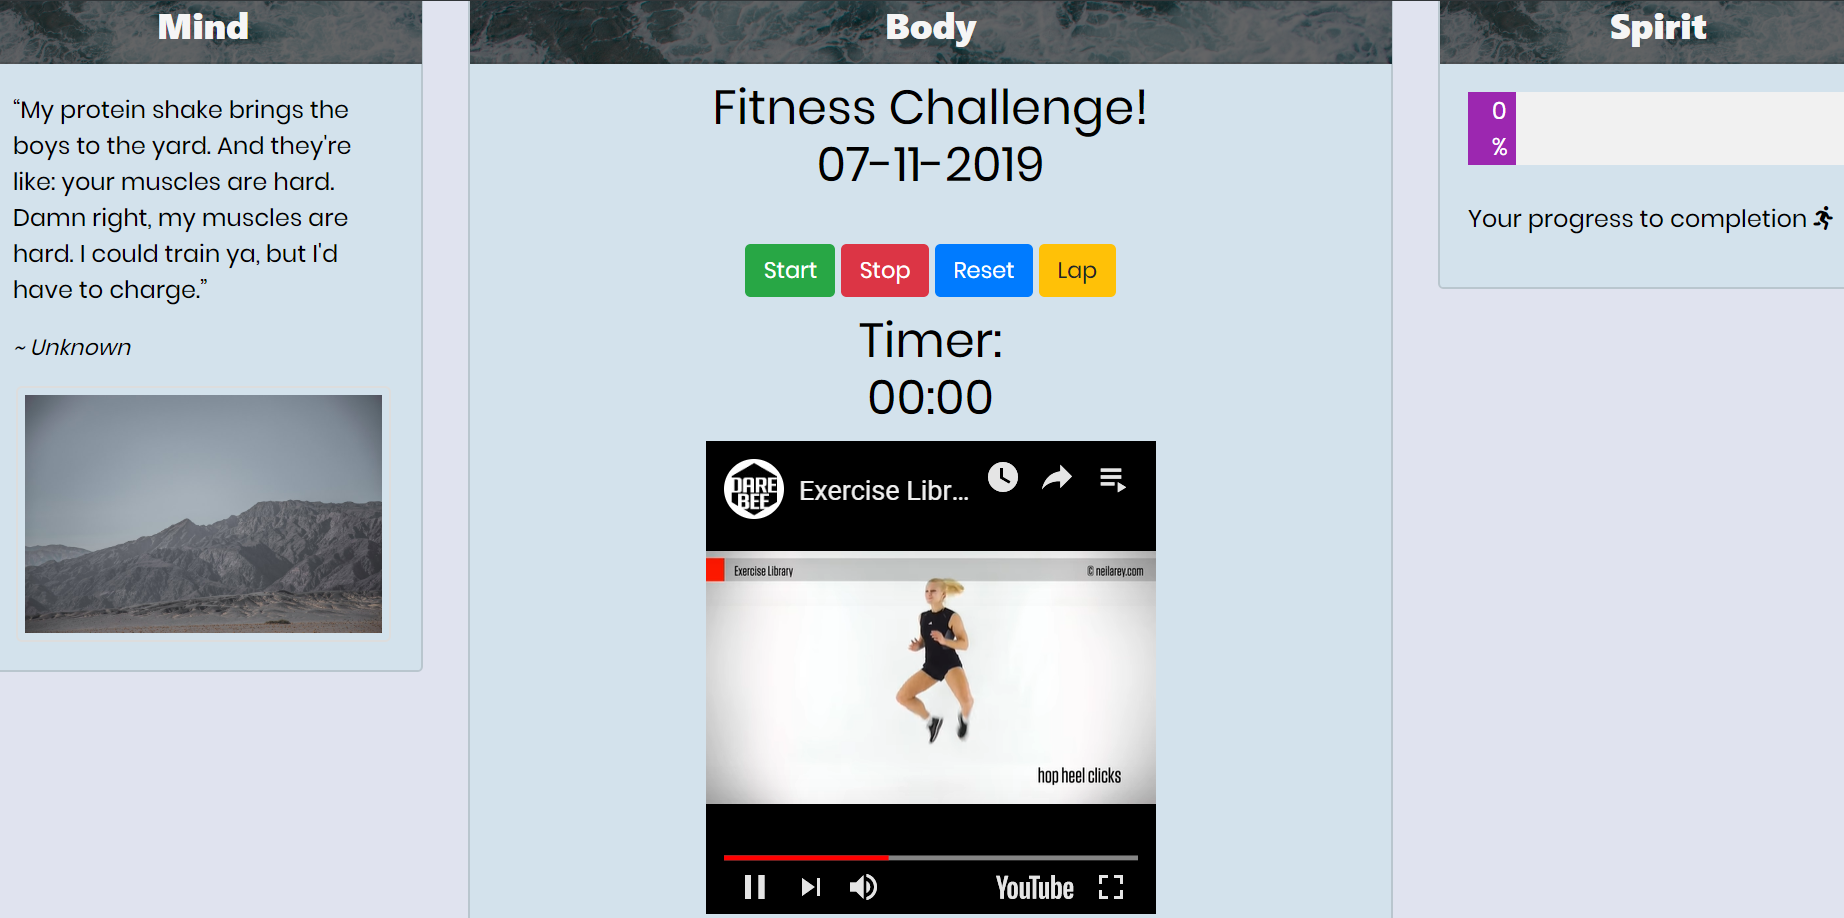 Fitness page